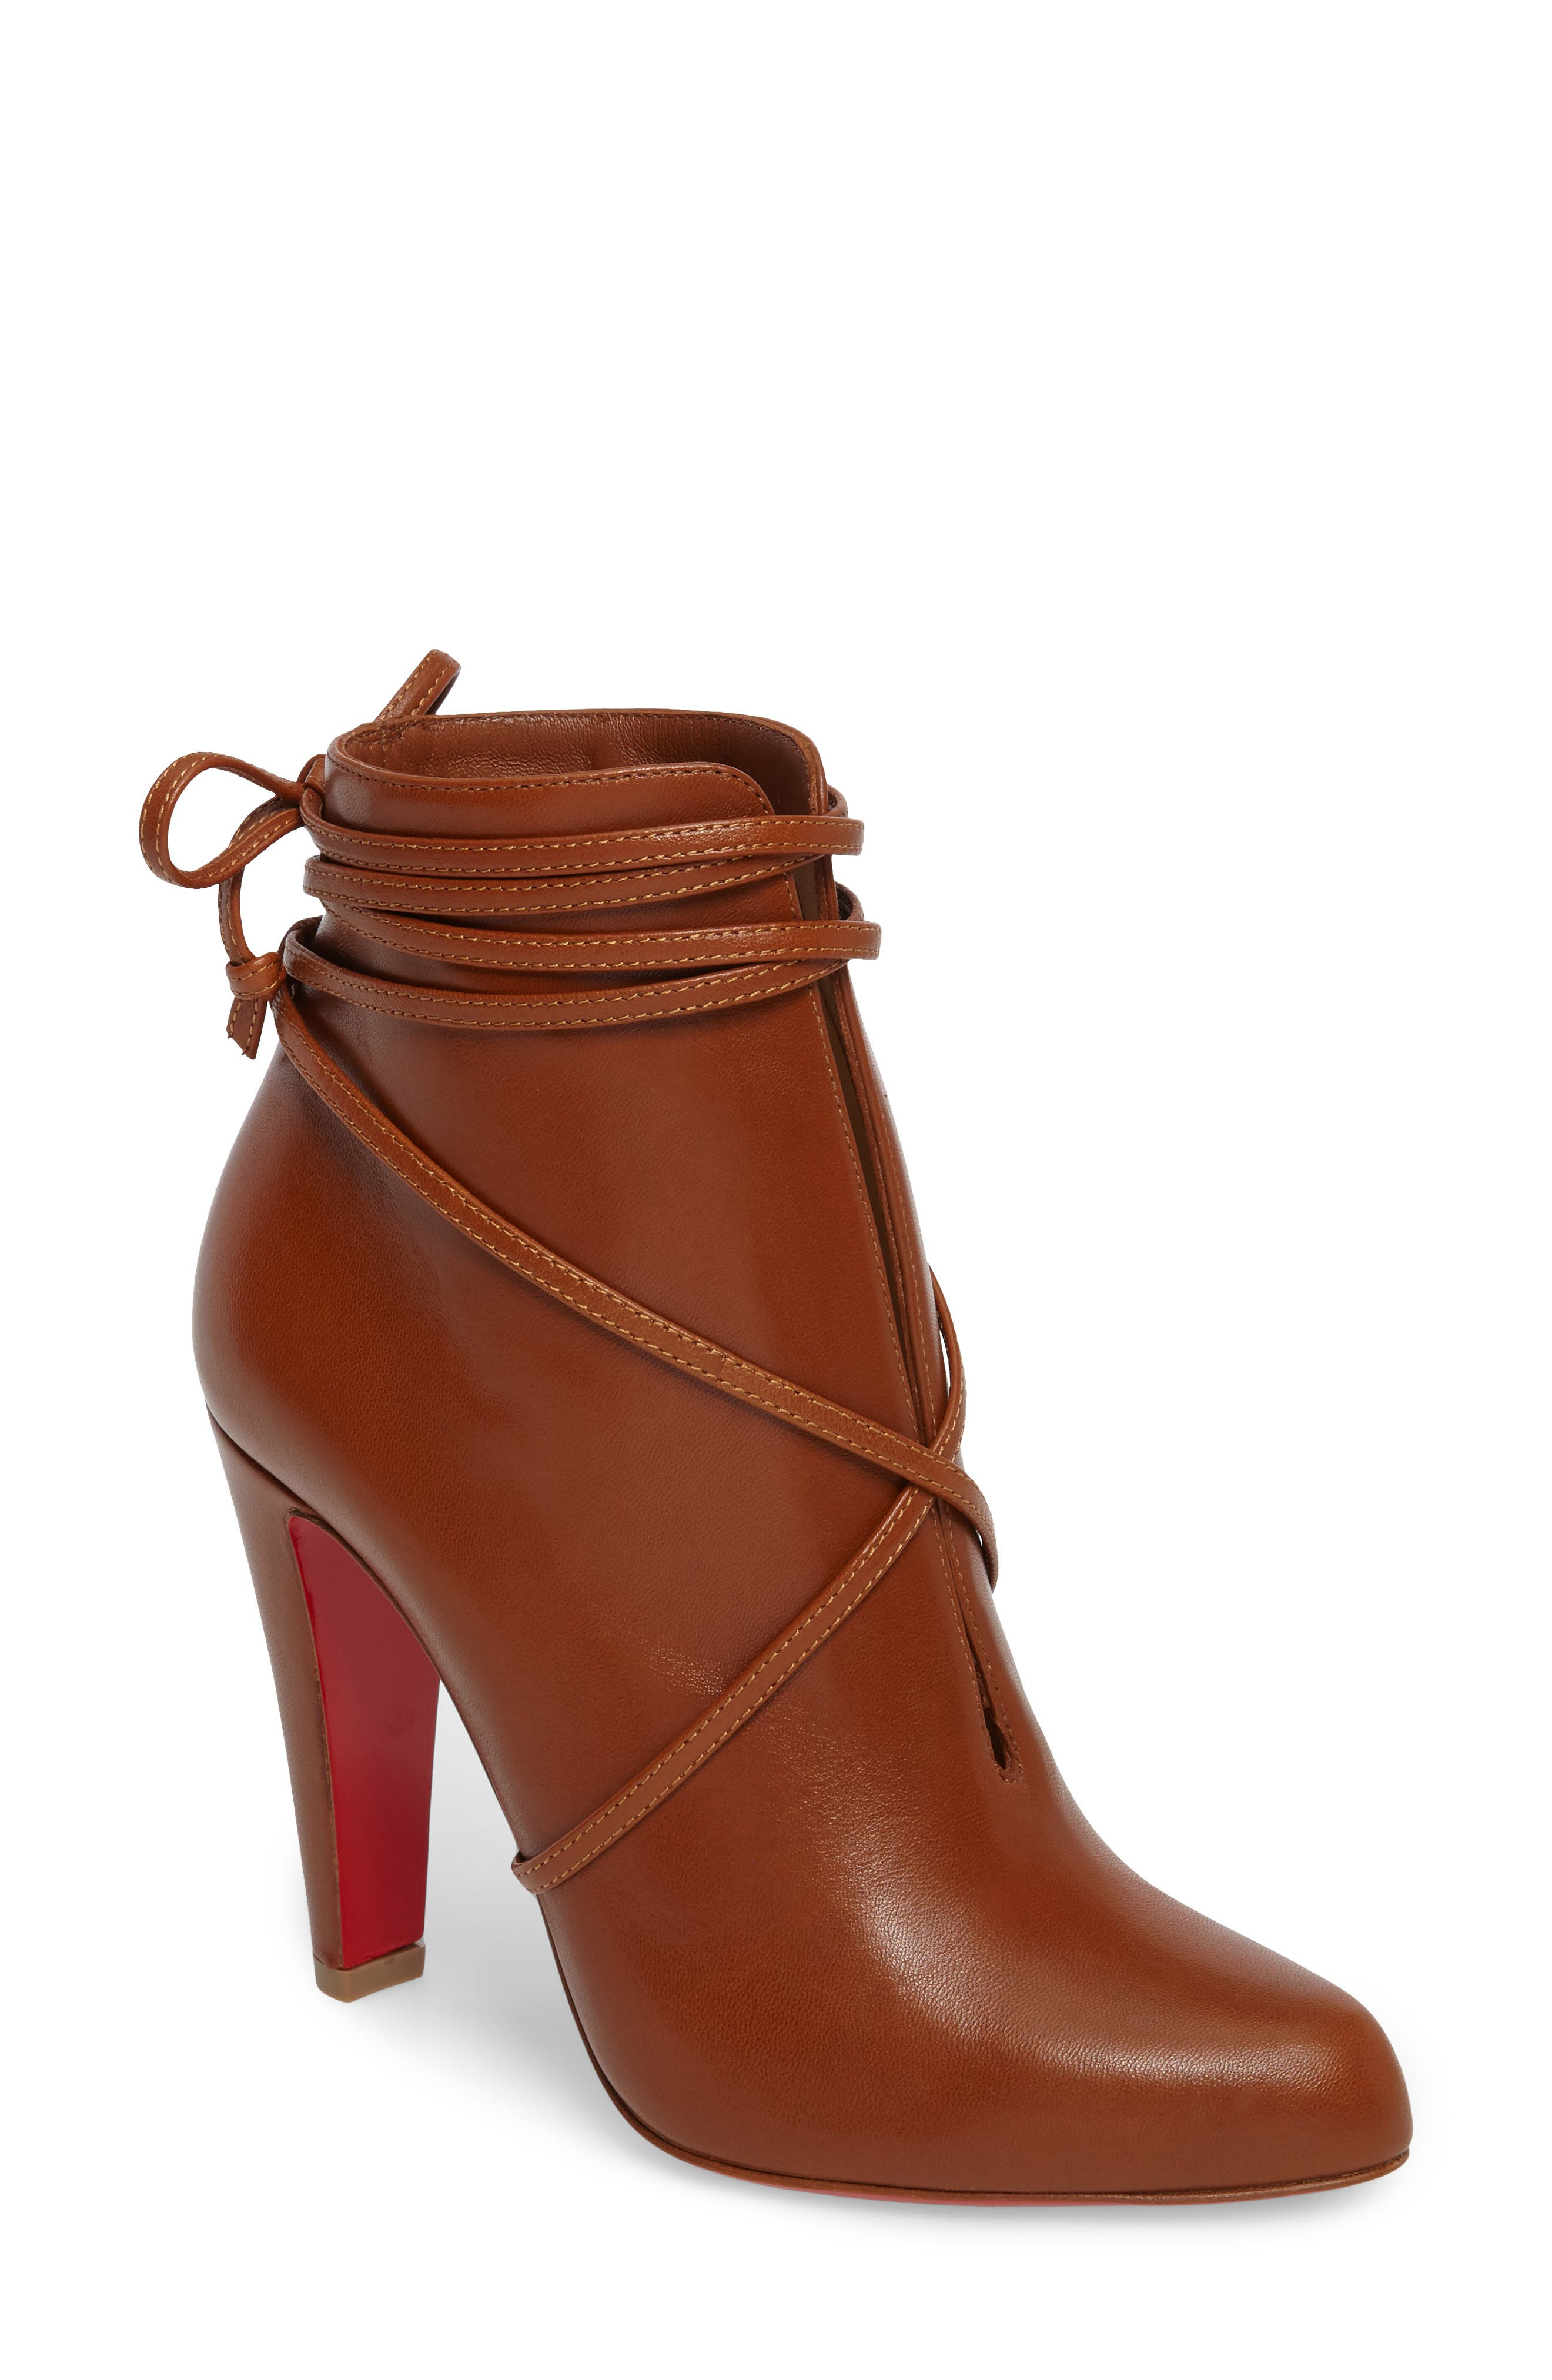 Main Image - Christian Louboutin Ankle Tie Bootie (Women)